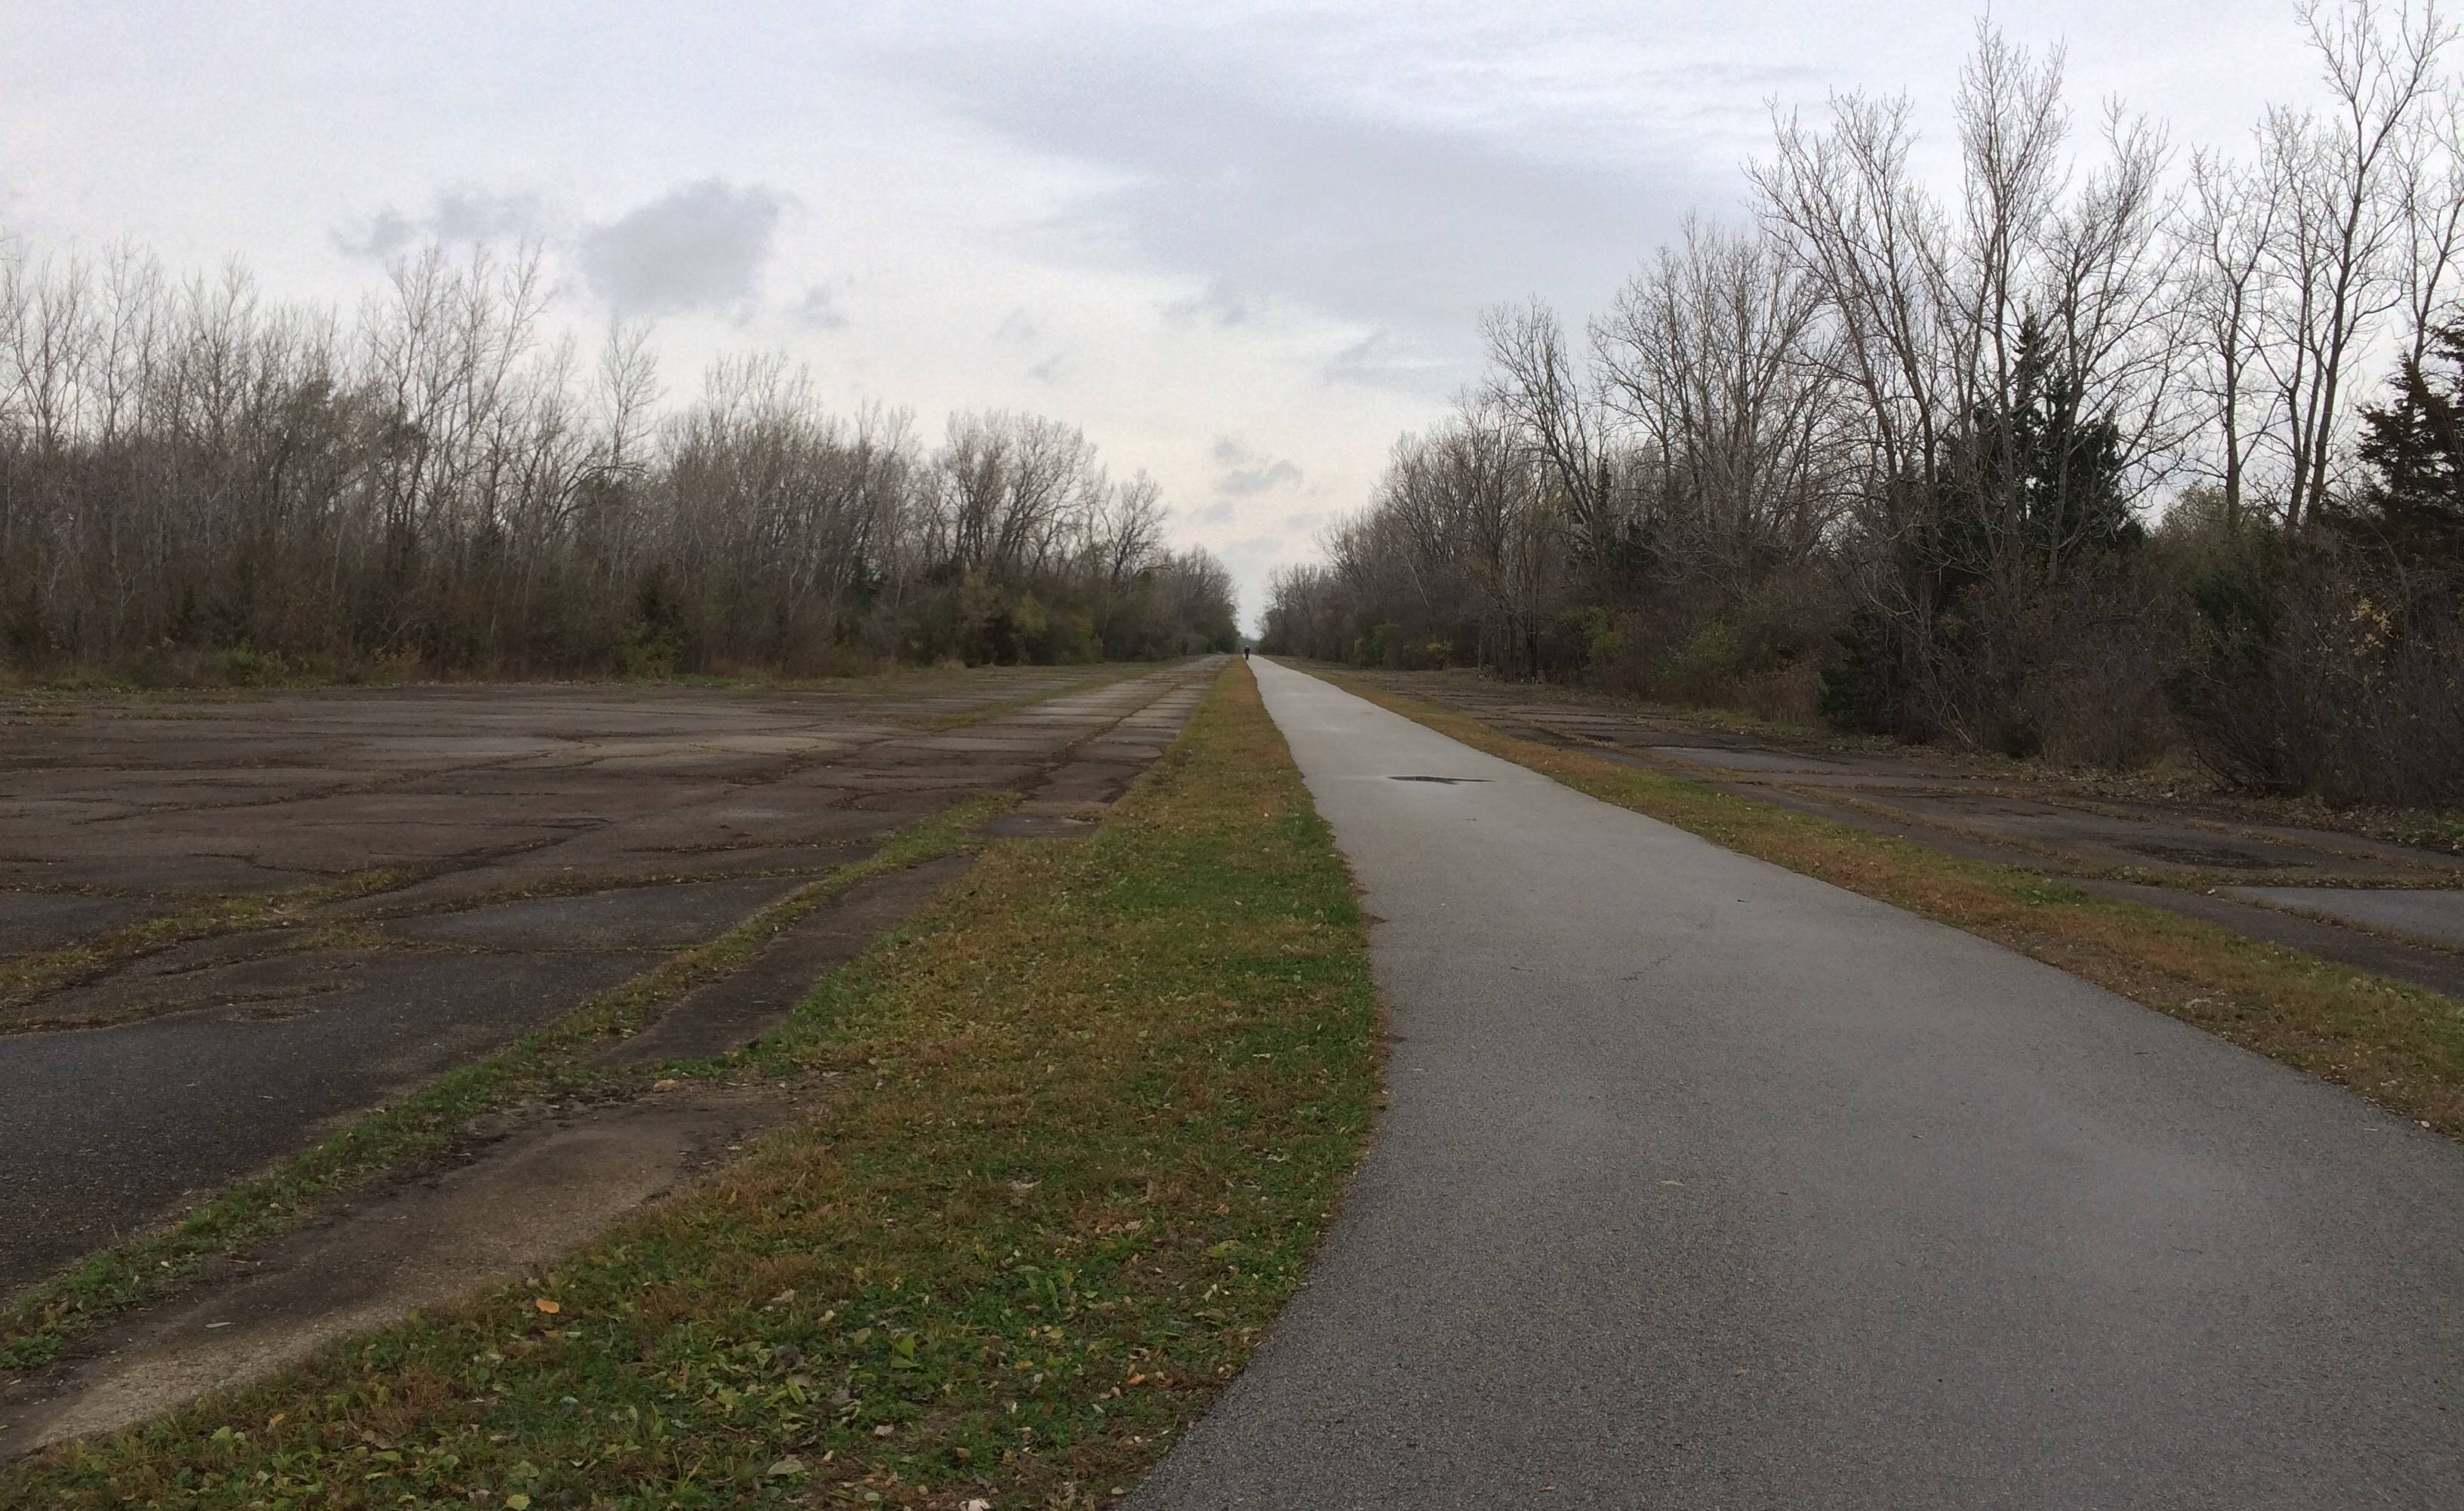 Trail expansion is coming to Raceway Woods Forest Preserve near Carpentersville.